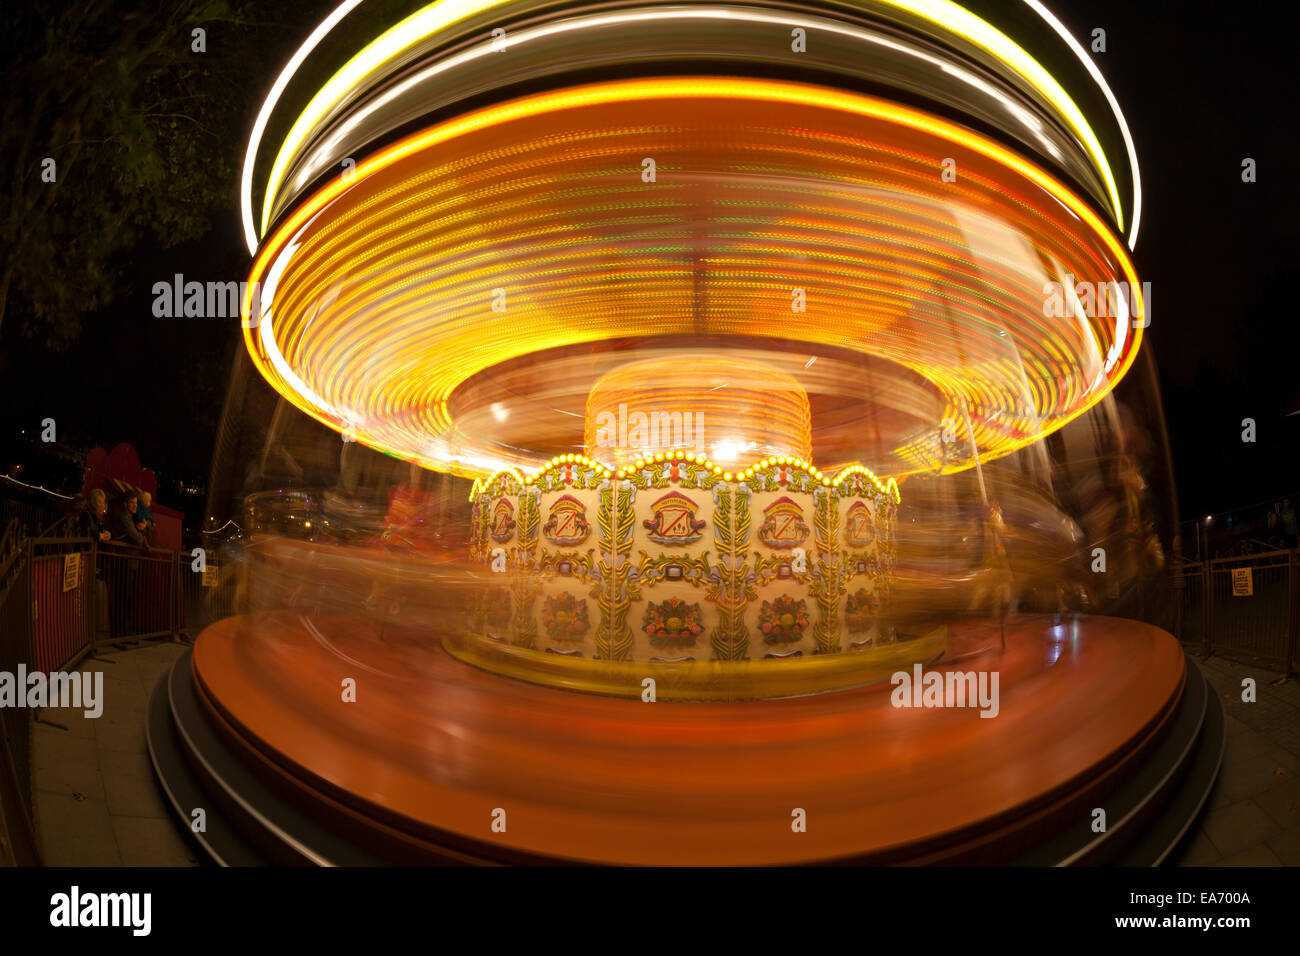 merry-go-round-on-the-riverside-promenade-after-dark-south-bank-london-EA700A.jpg